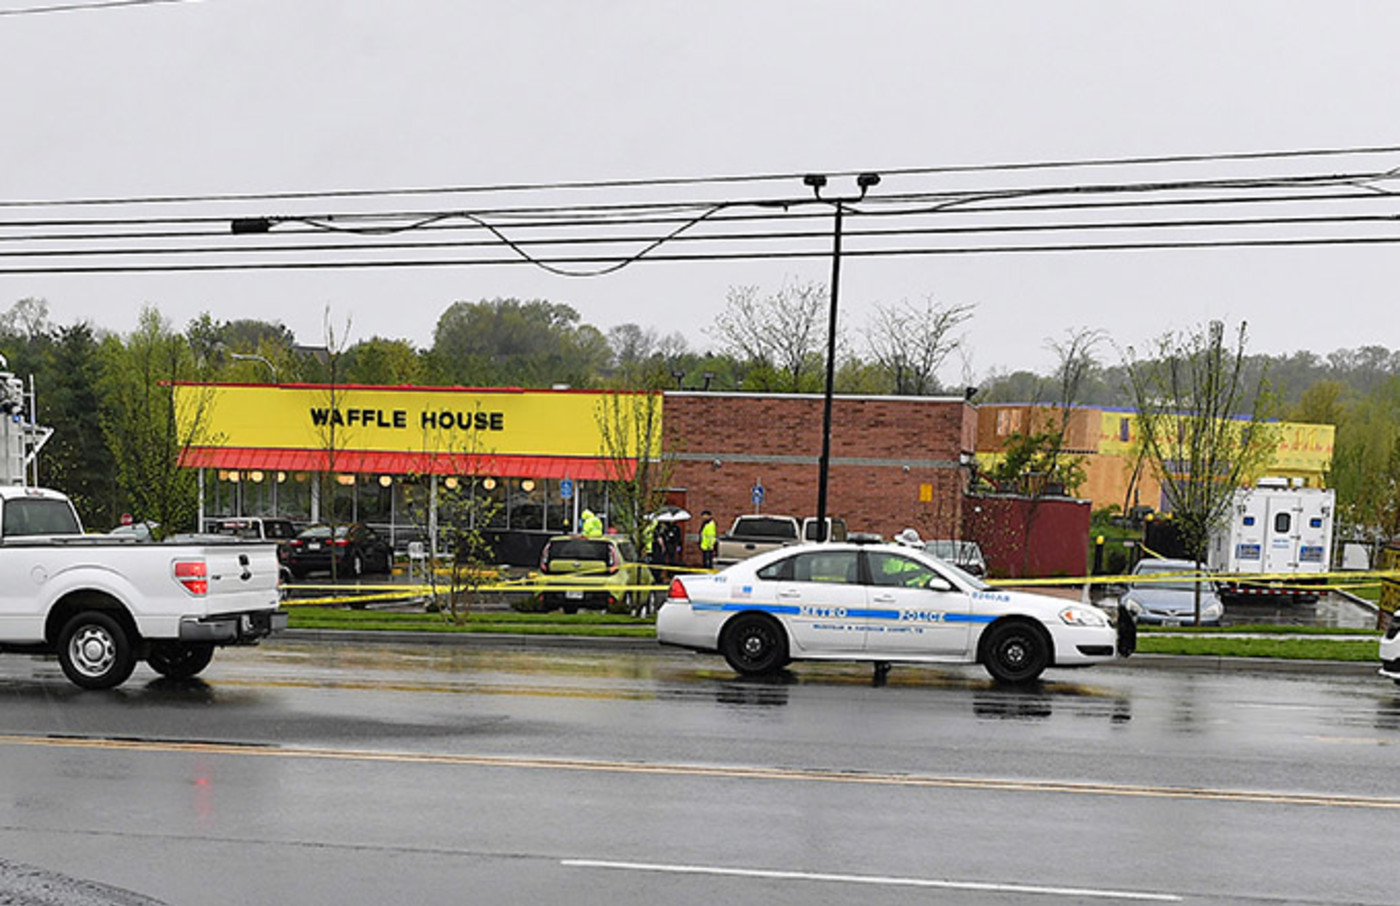 This is a photo of Waffle House.